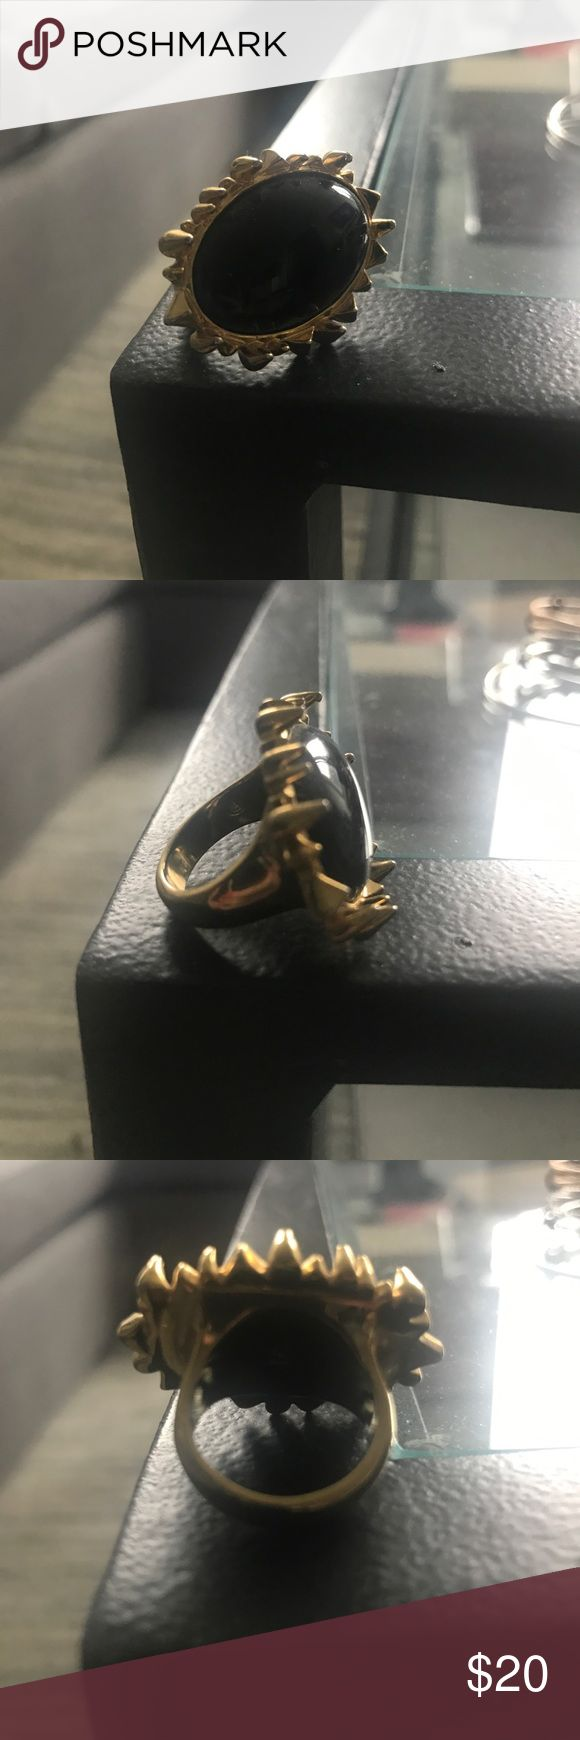 House of Harlow size 6 ring Black and gold sunburst ring - tons of compliments! House of Harlow 1960 Jewelry Rings